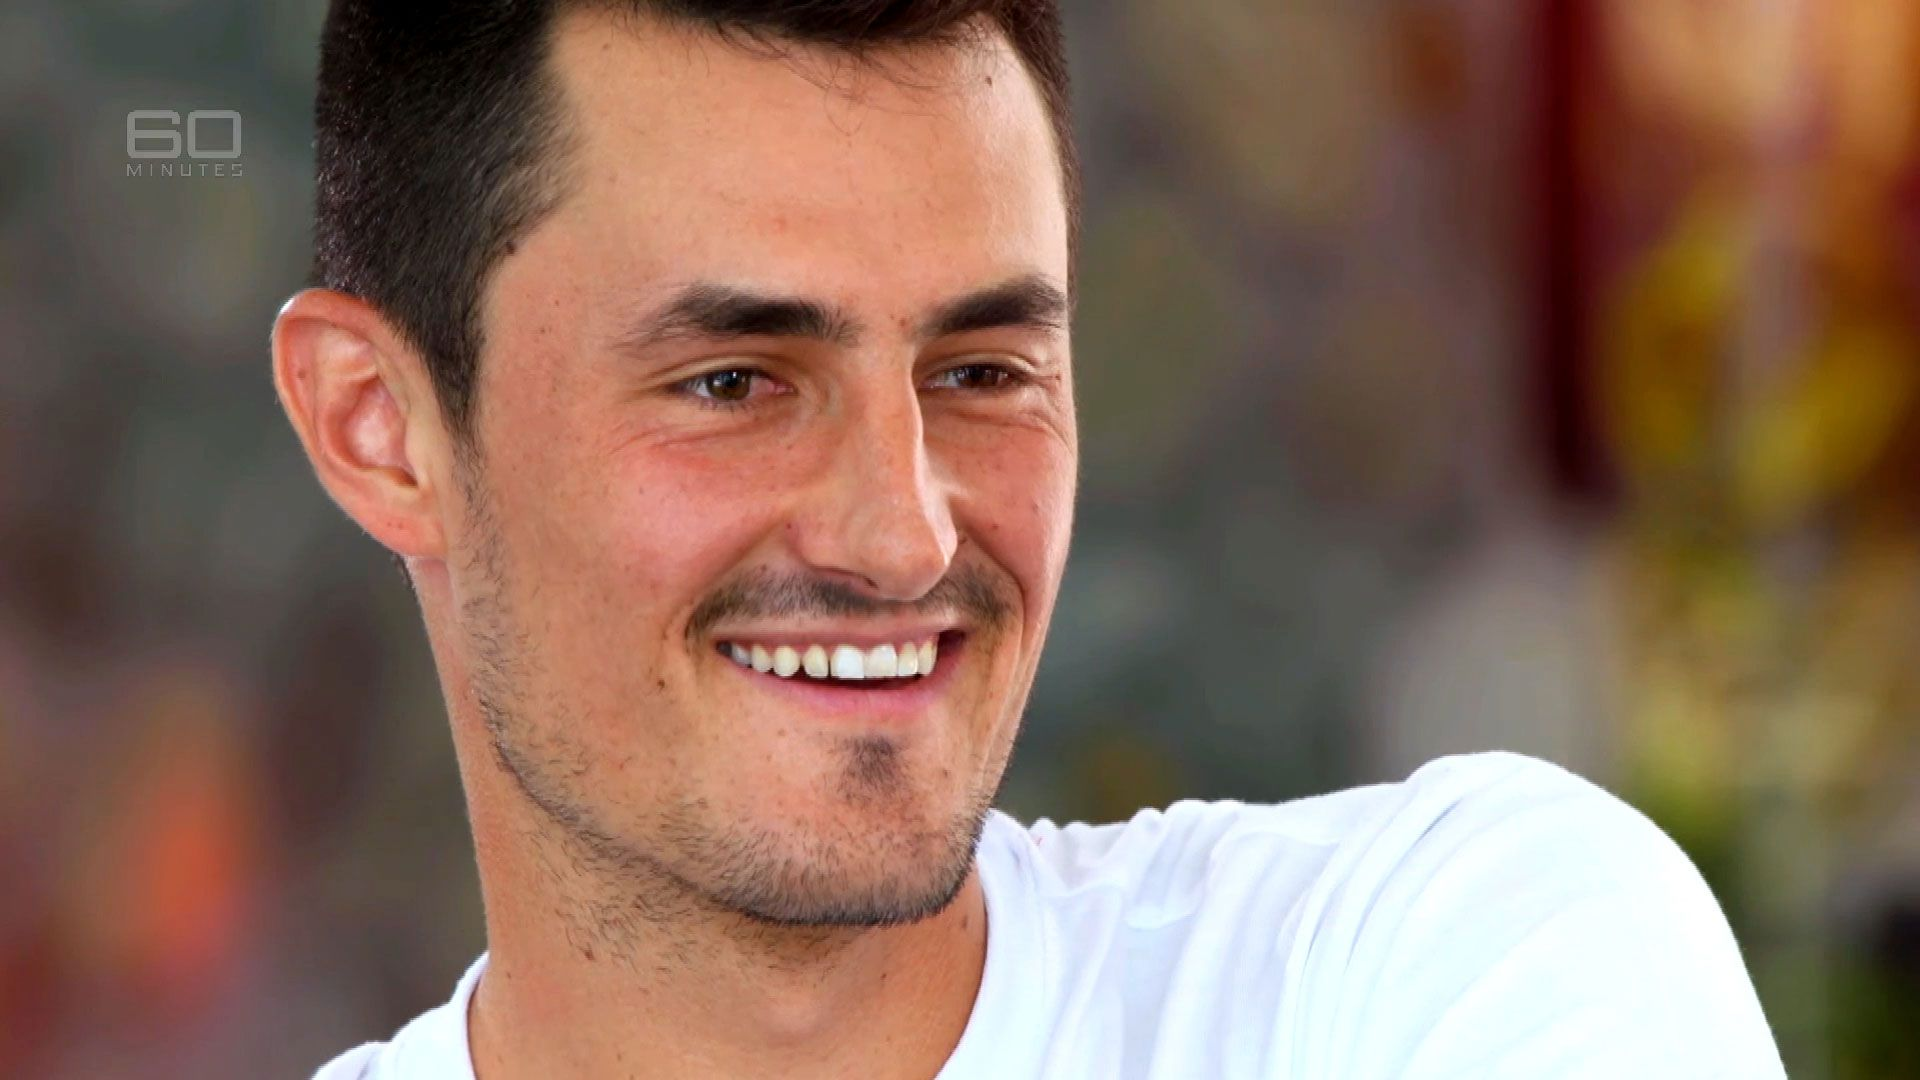 Bernard Tomic hits back at critics in 60 Minutes interview